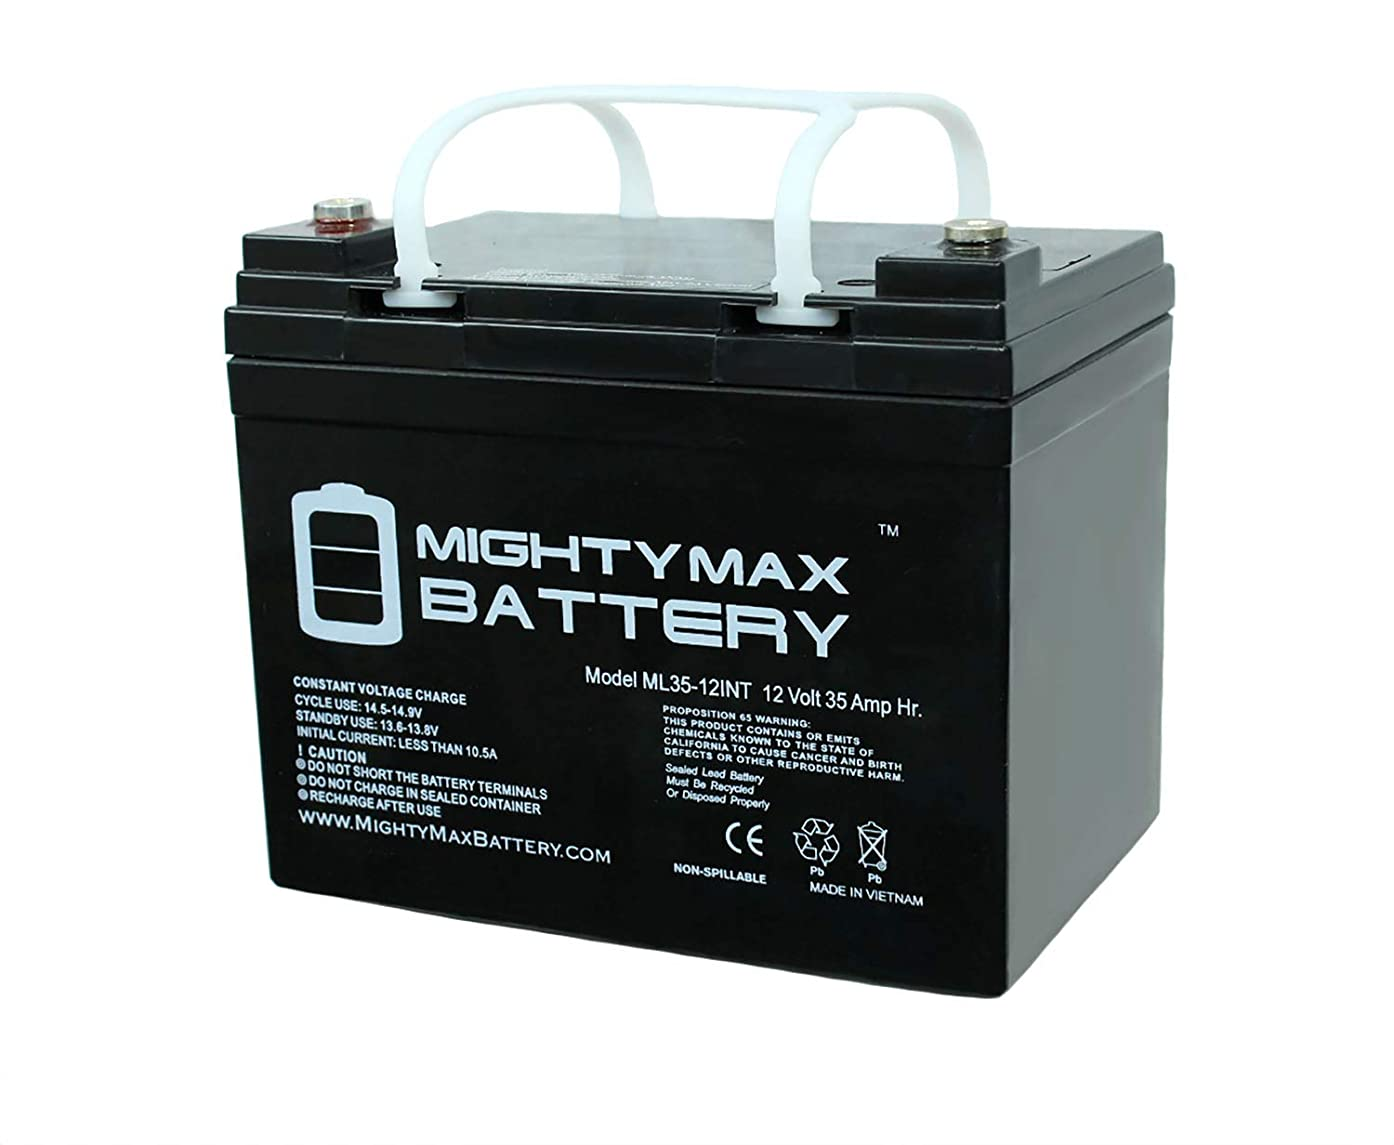 Mighty Max Battery 12V 35AH SLA Internal Thread Battery for John Deere Lawn Tractor Brand Product